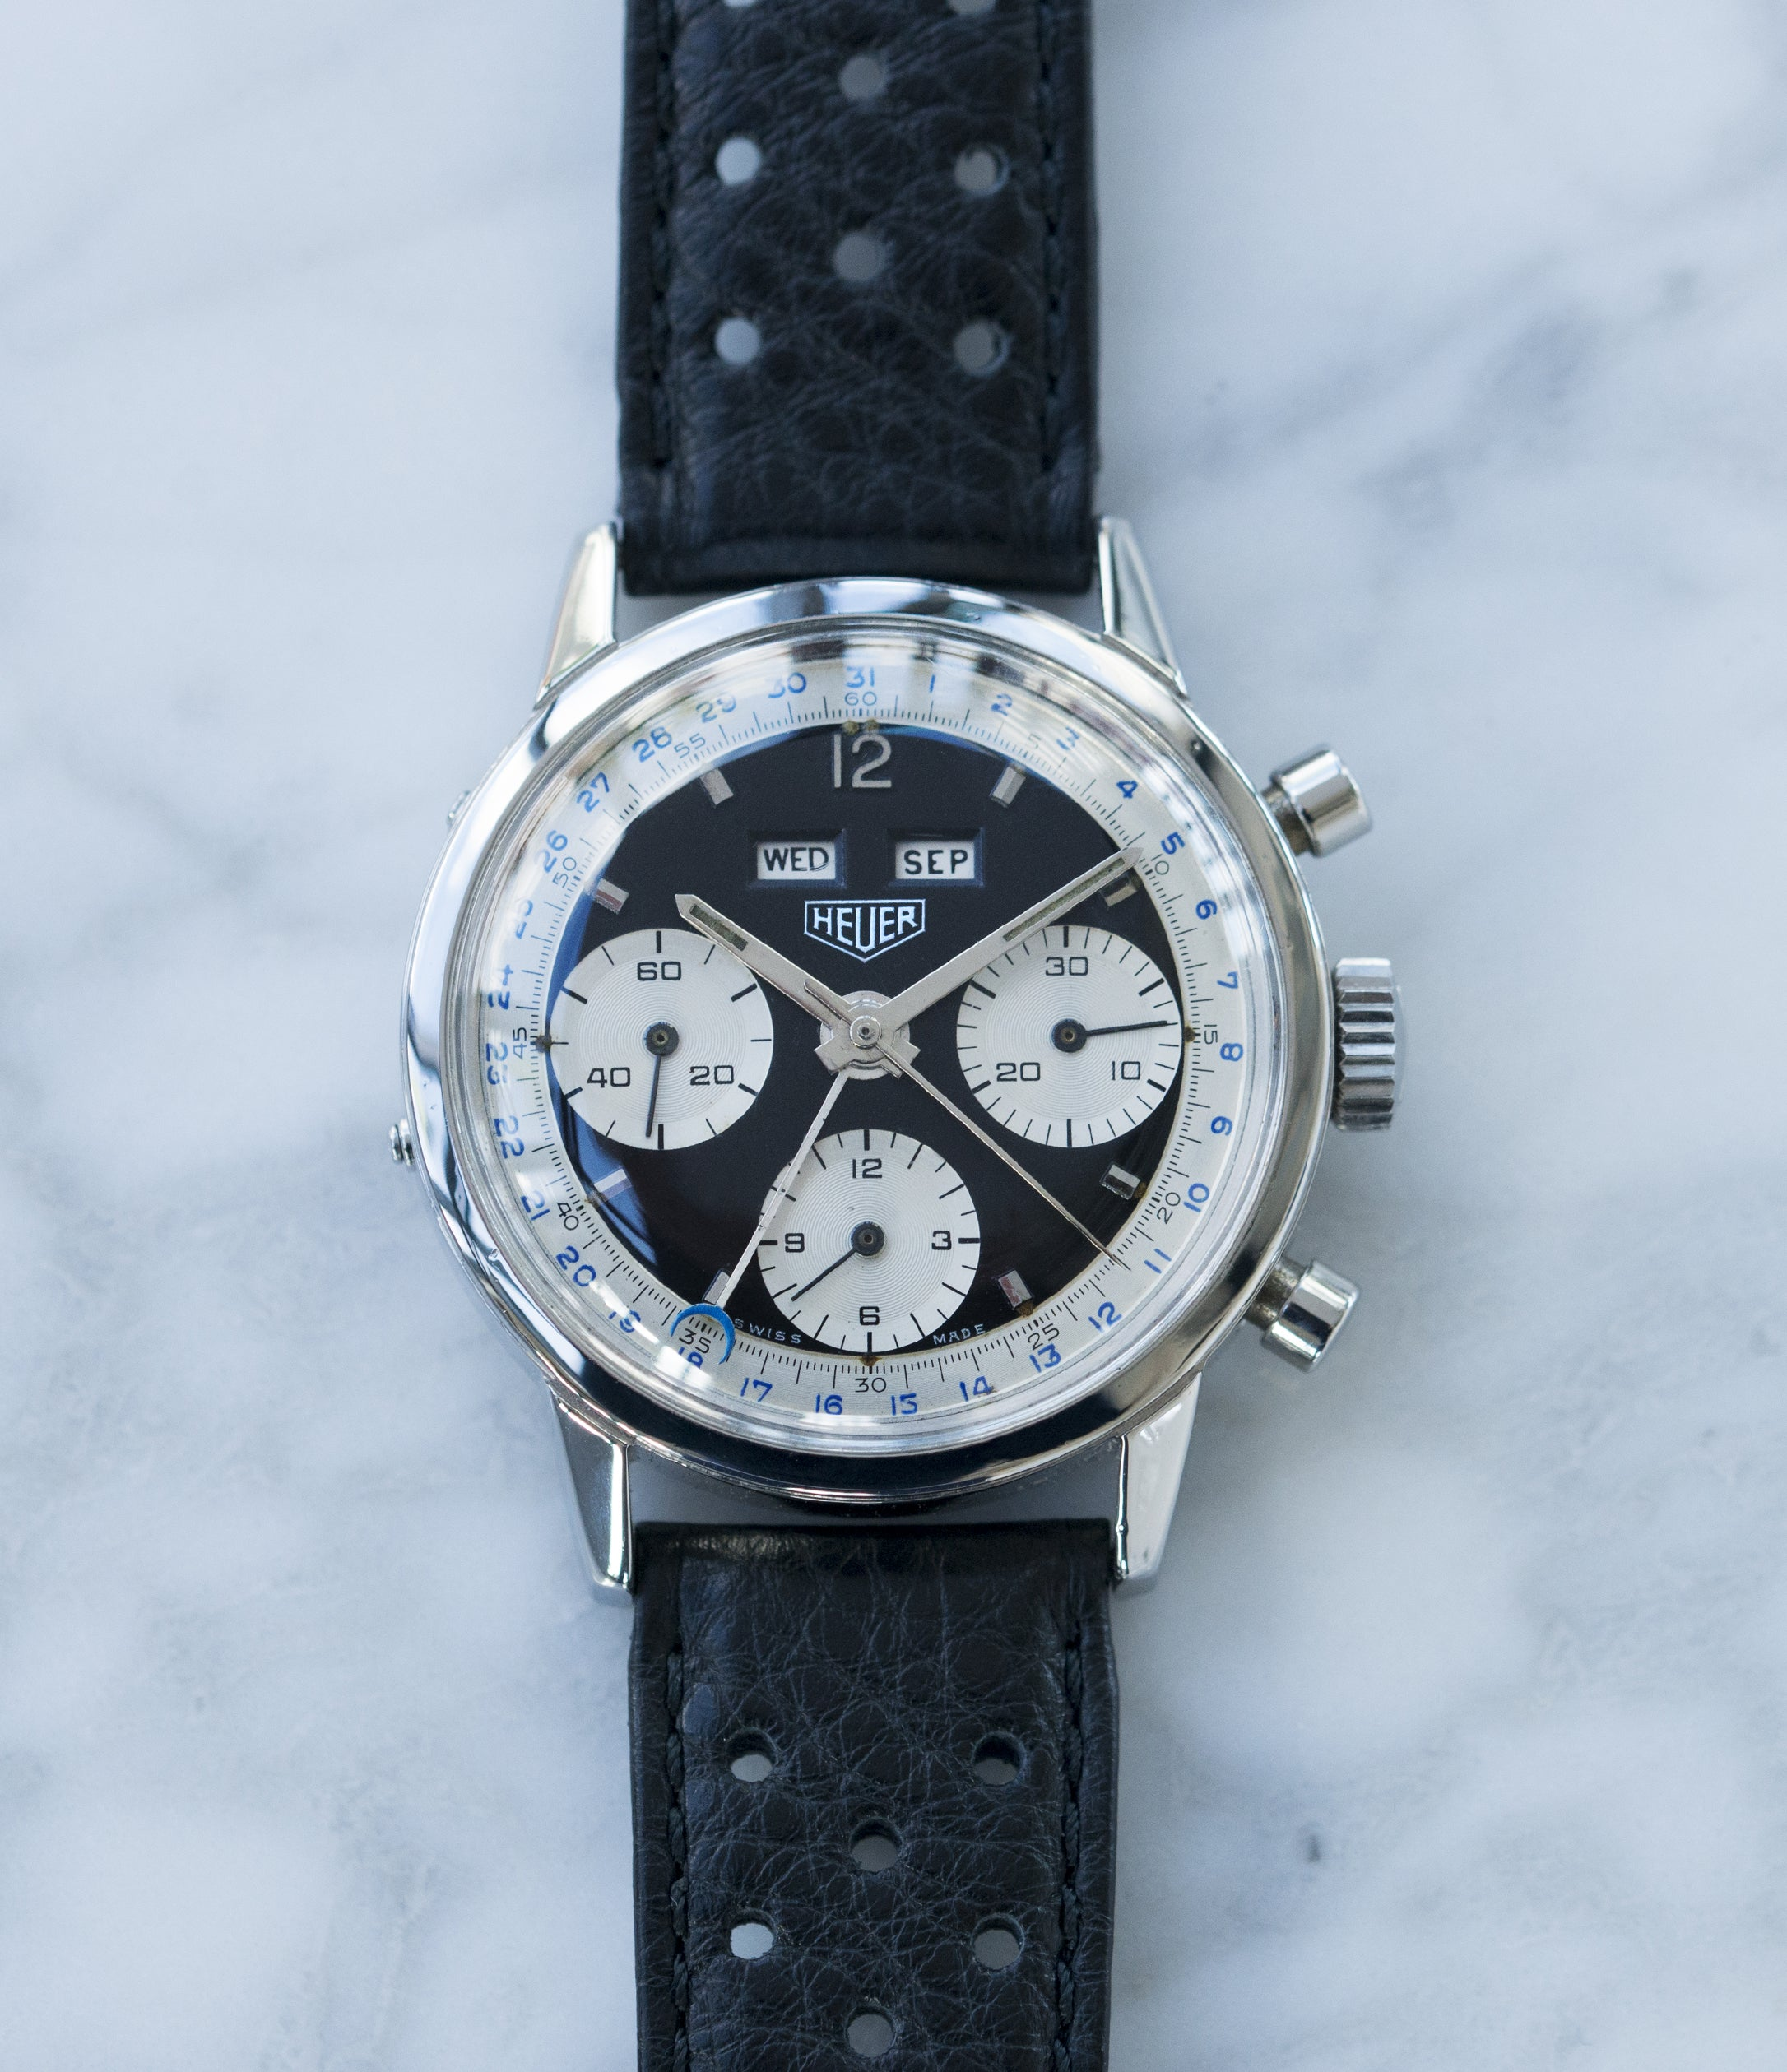 chronograph watches alzenau silver more alexander poljot as rare en views shorokhoff